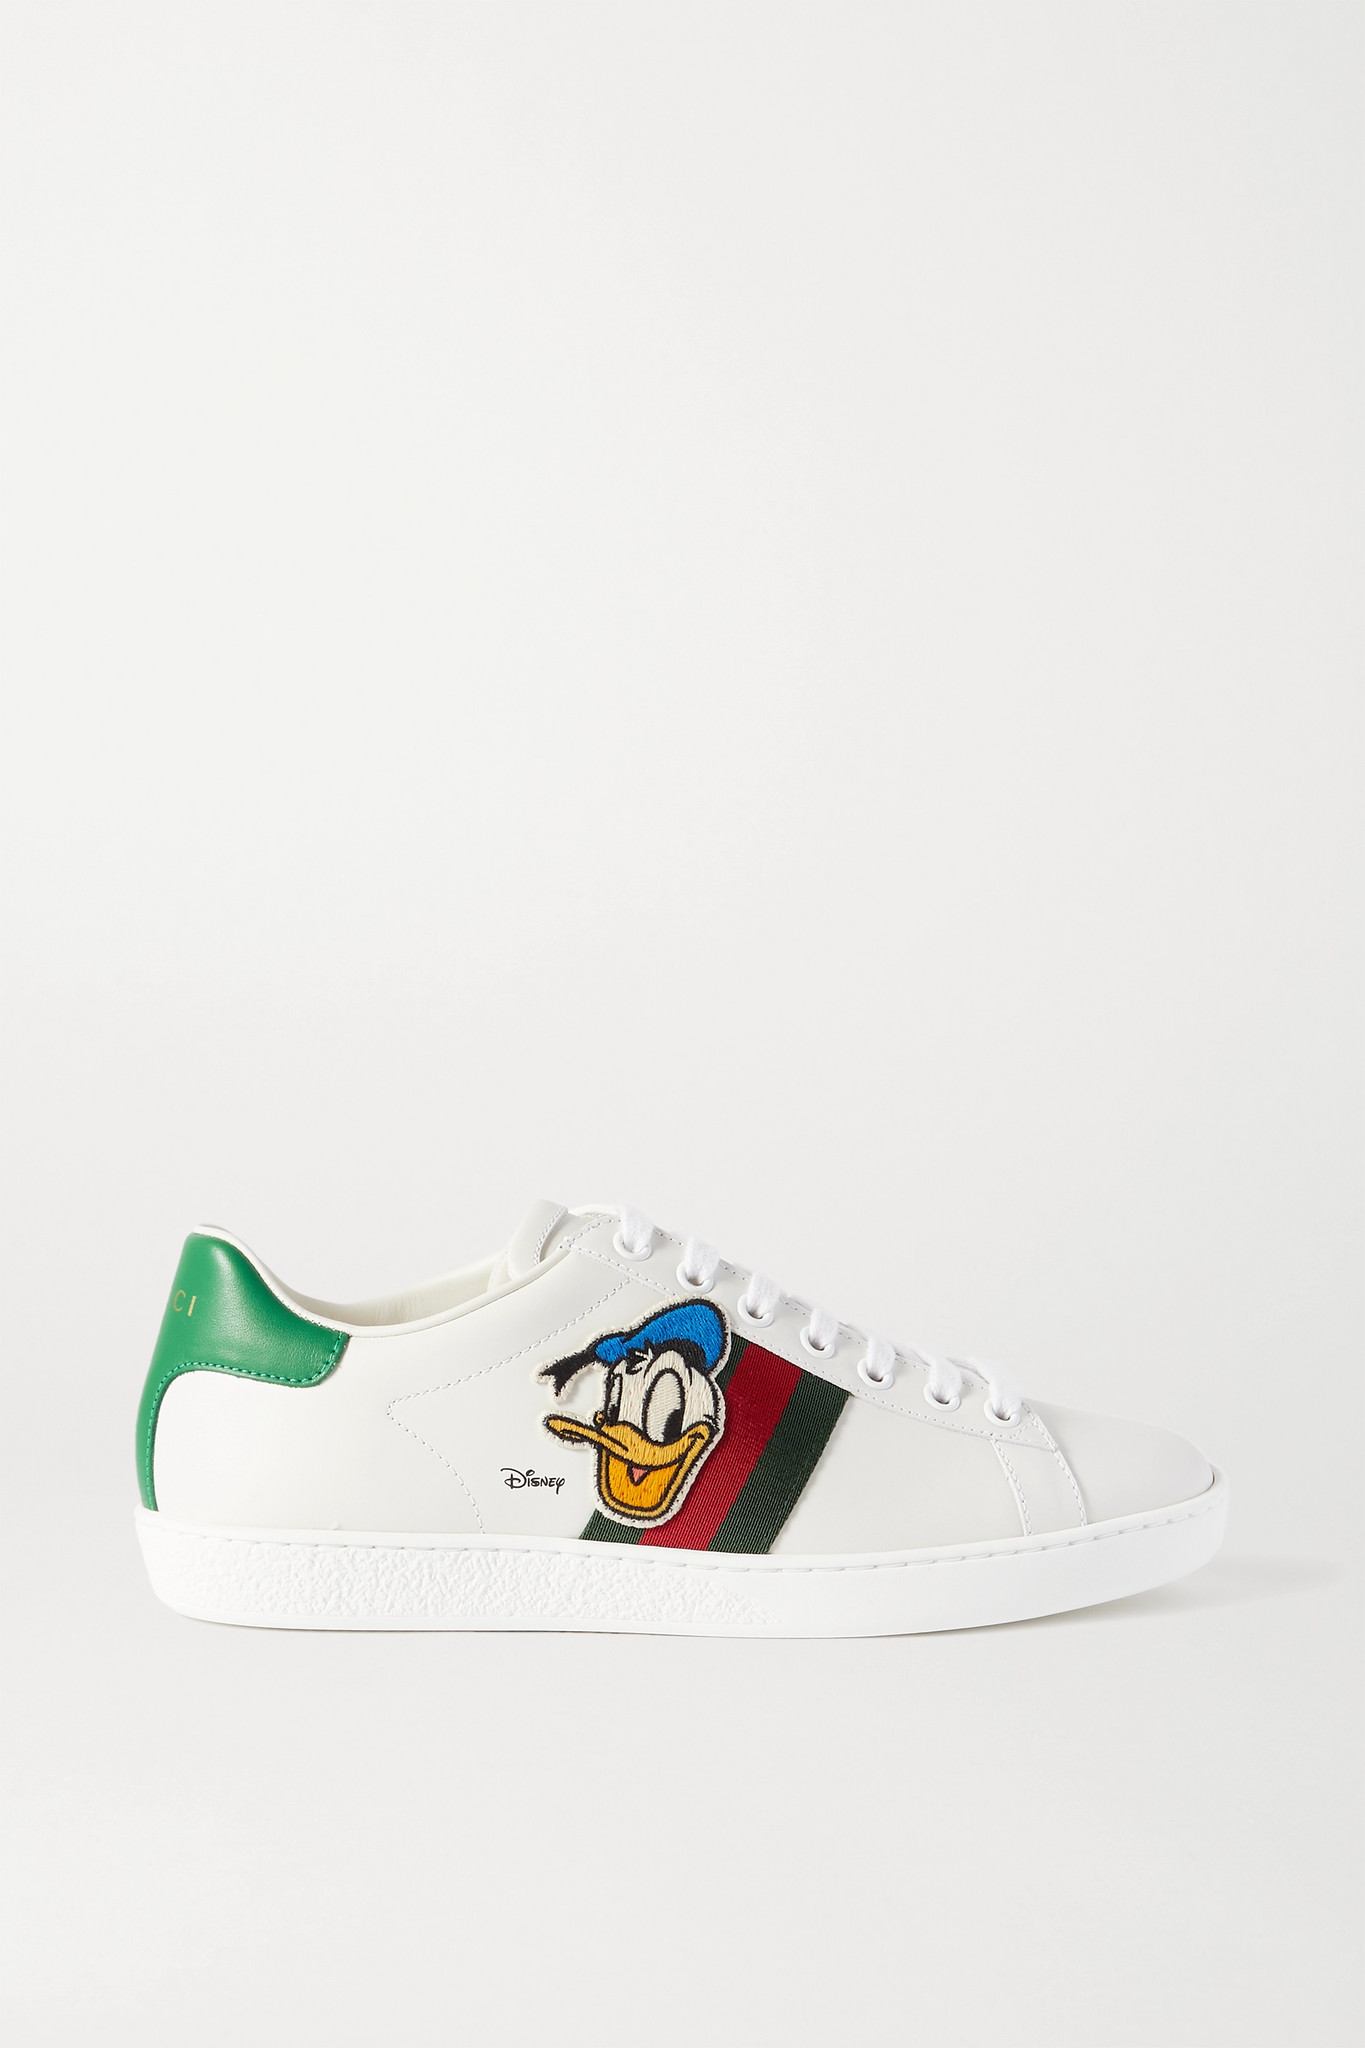 GUCCI - + Disney Ace Appliquéd Canvas-trimmed Leather Sneakers - White - IT41